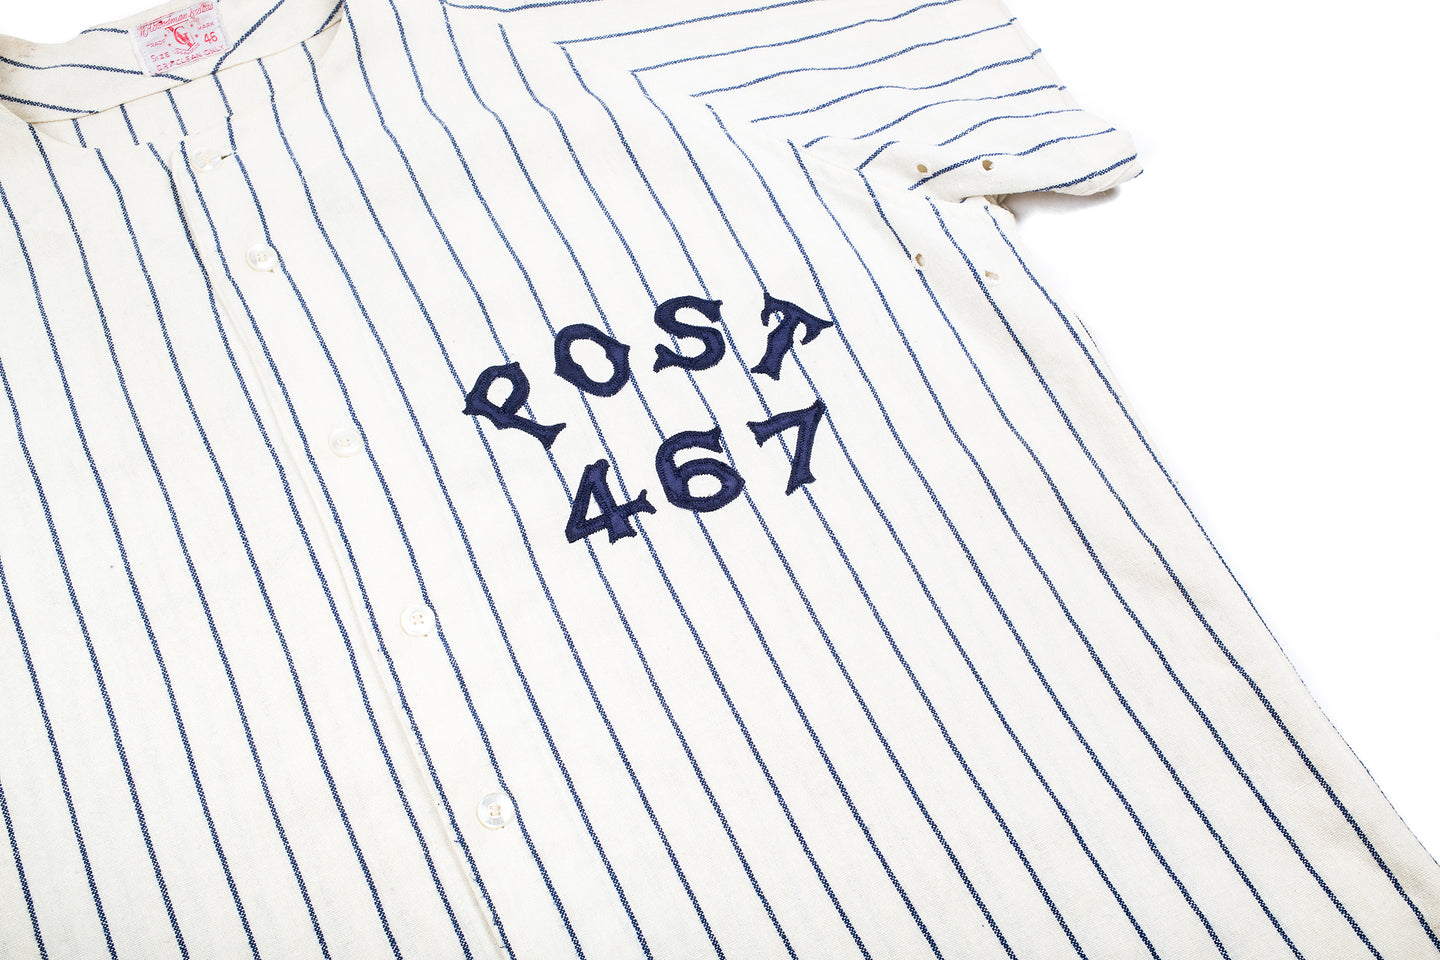 dcb367dafb ... Vintage Goodman and Sons - Post 467 Pinstripe Baseball Jersey ...